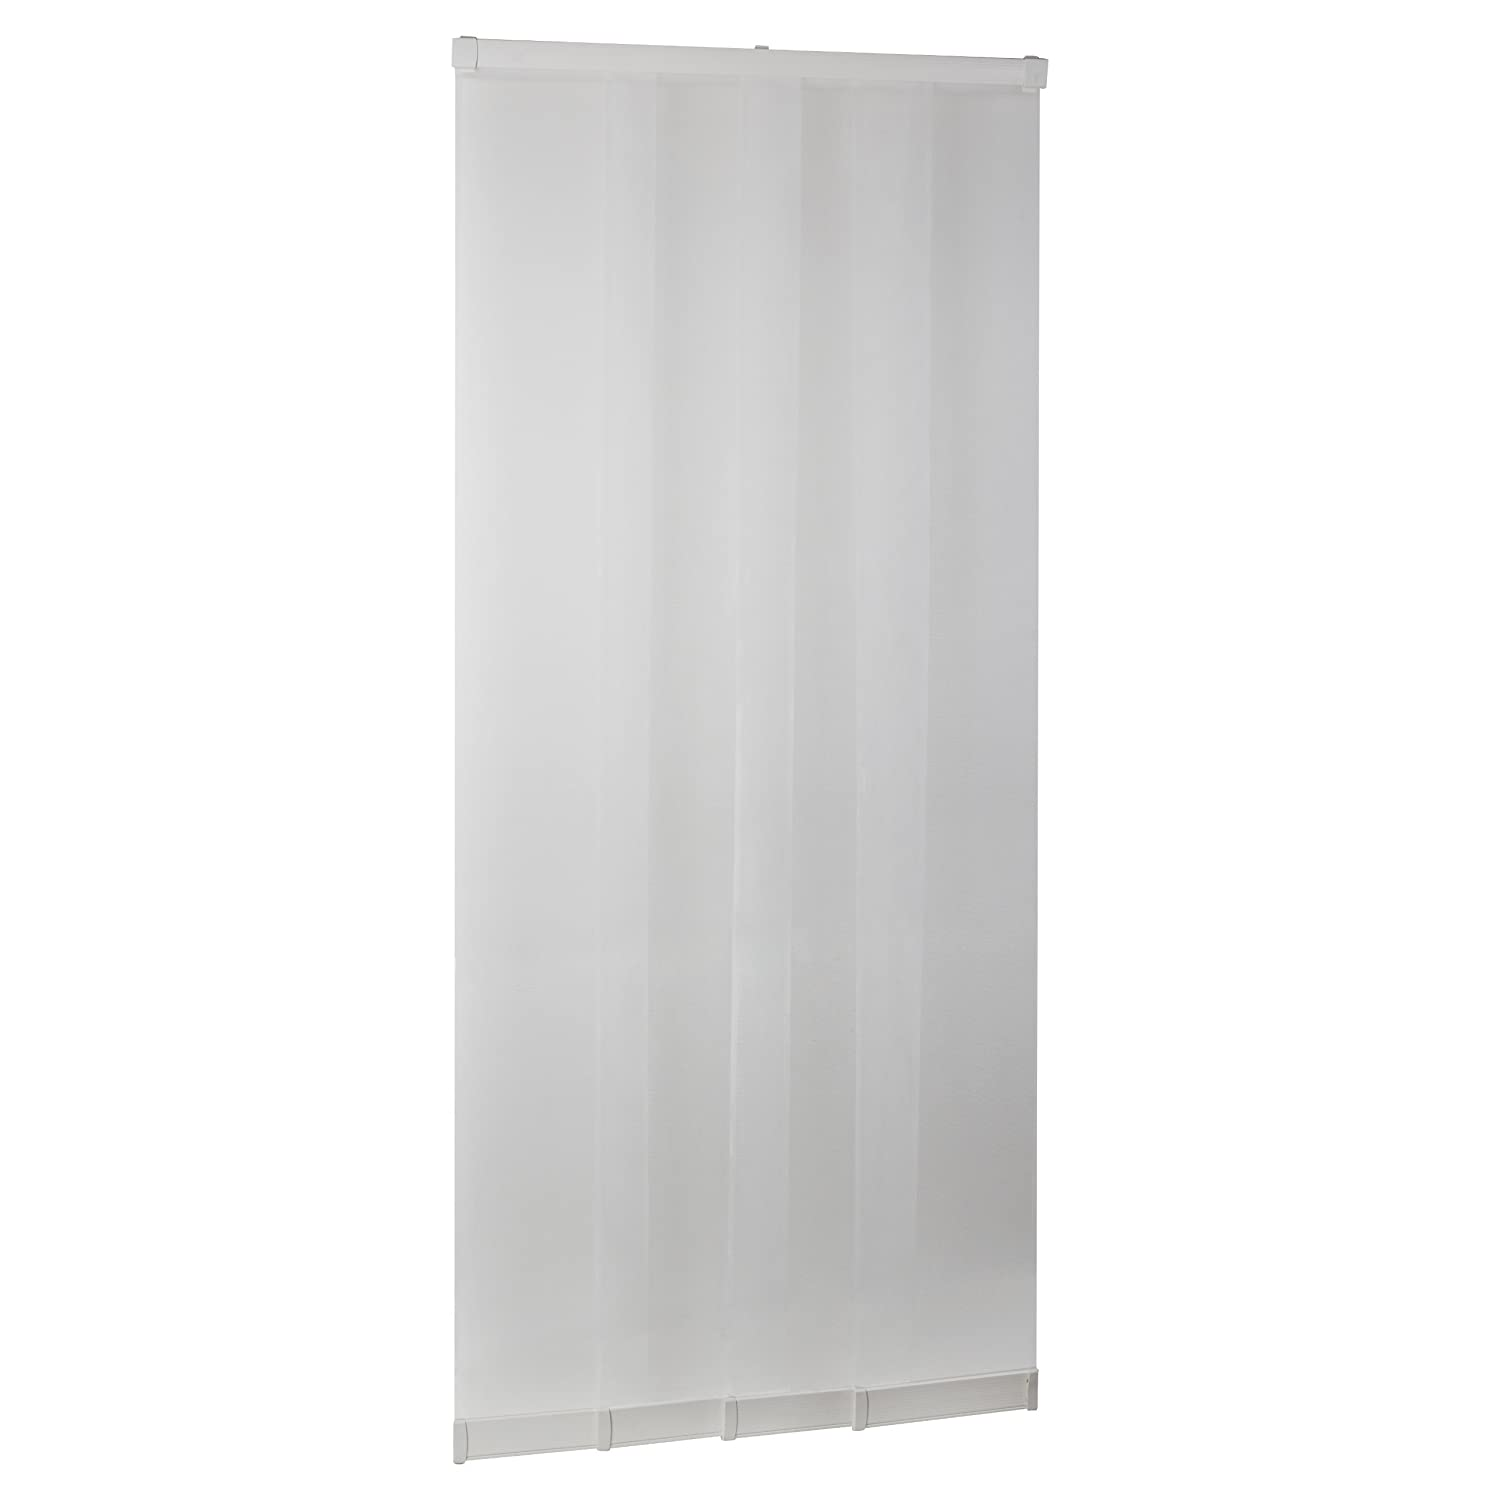 Tesa Mosquito, Fly And Insect Slatted Door Curtain 0.95 M X 2.2 M (max) White